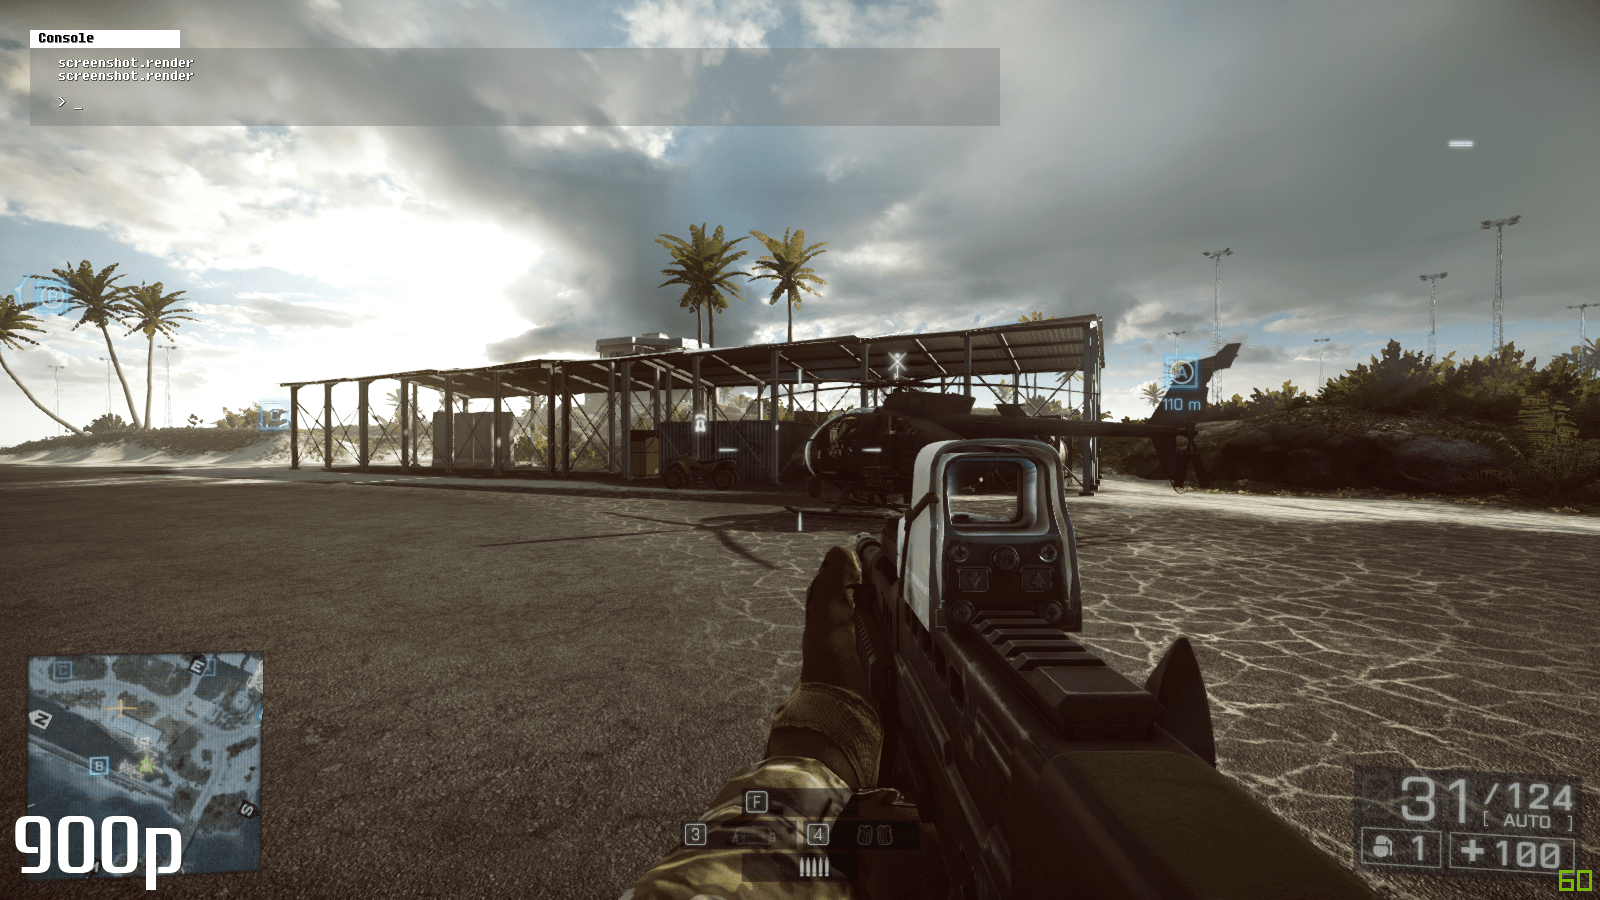 PS4 1080p Vs Xbox One 900p Screenshot Comparison Shows The Graphical Leap Isnt Huge Is The